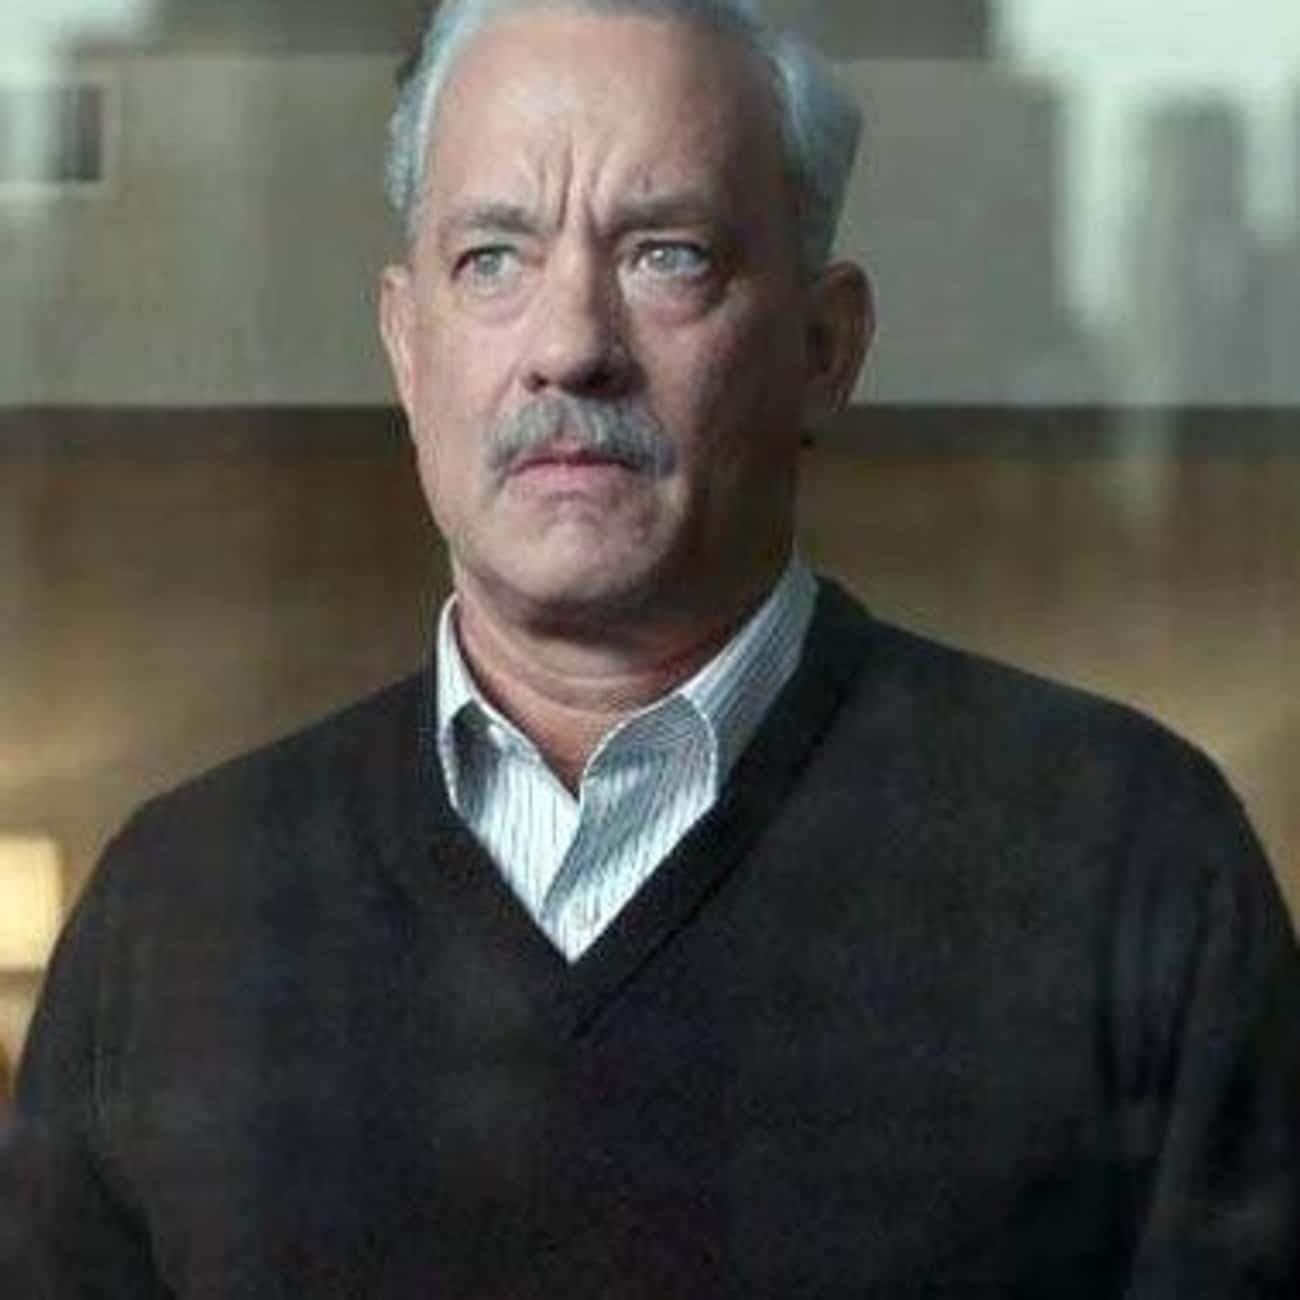 I'm Going to Be Judged by 208  is listed (or ranked) 1 on the list Top 10 Most Memorable Sully Movie Quotes According to Fans